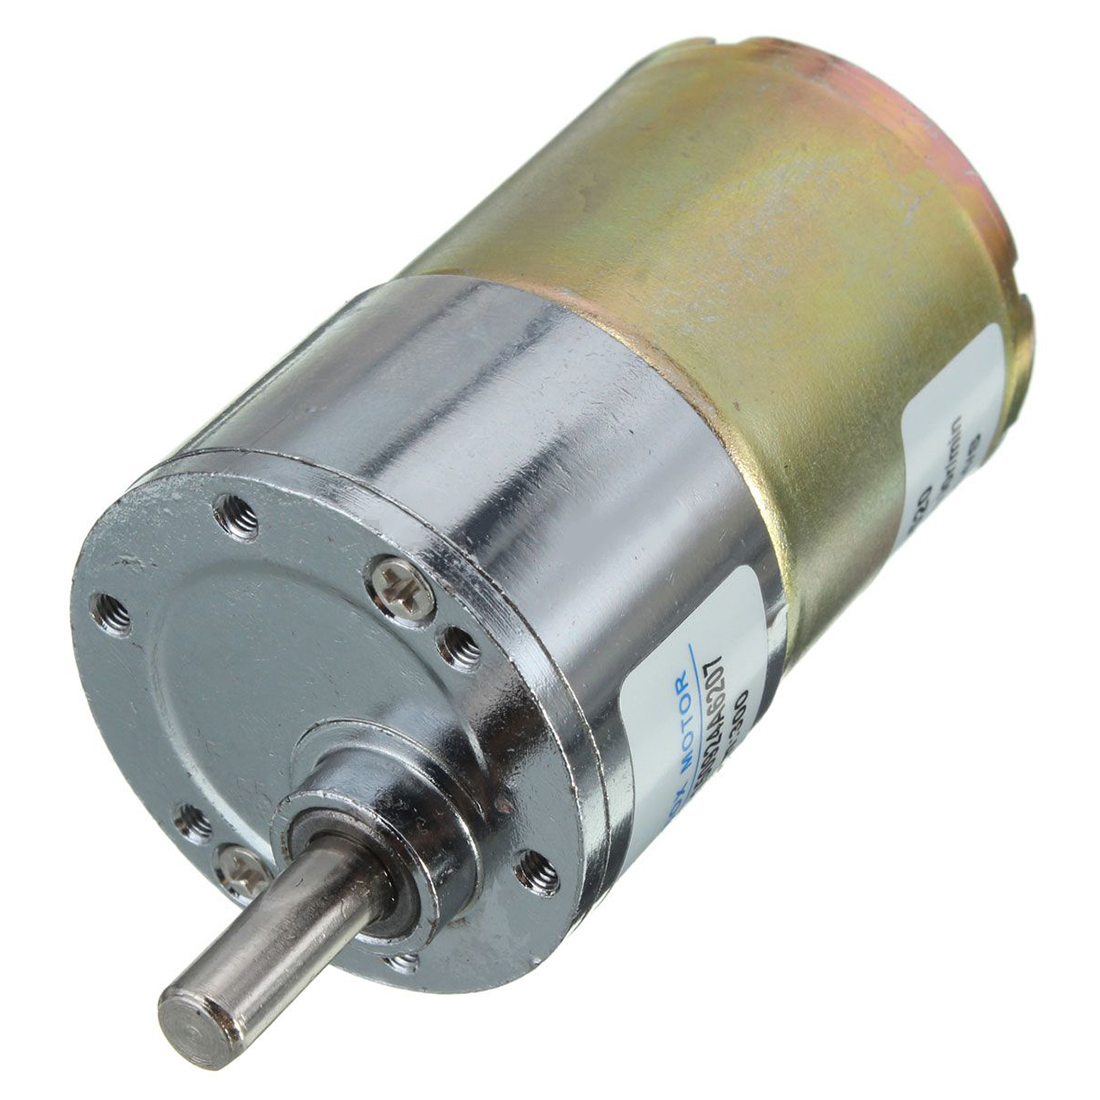 Zhengk 12v Dc 300 Rpm 37gb High Torque Gearbox Electric